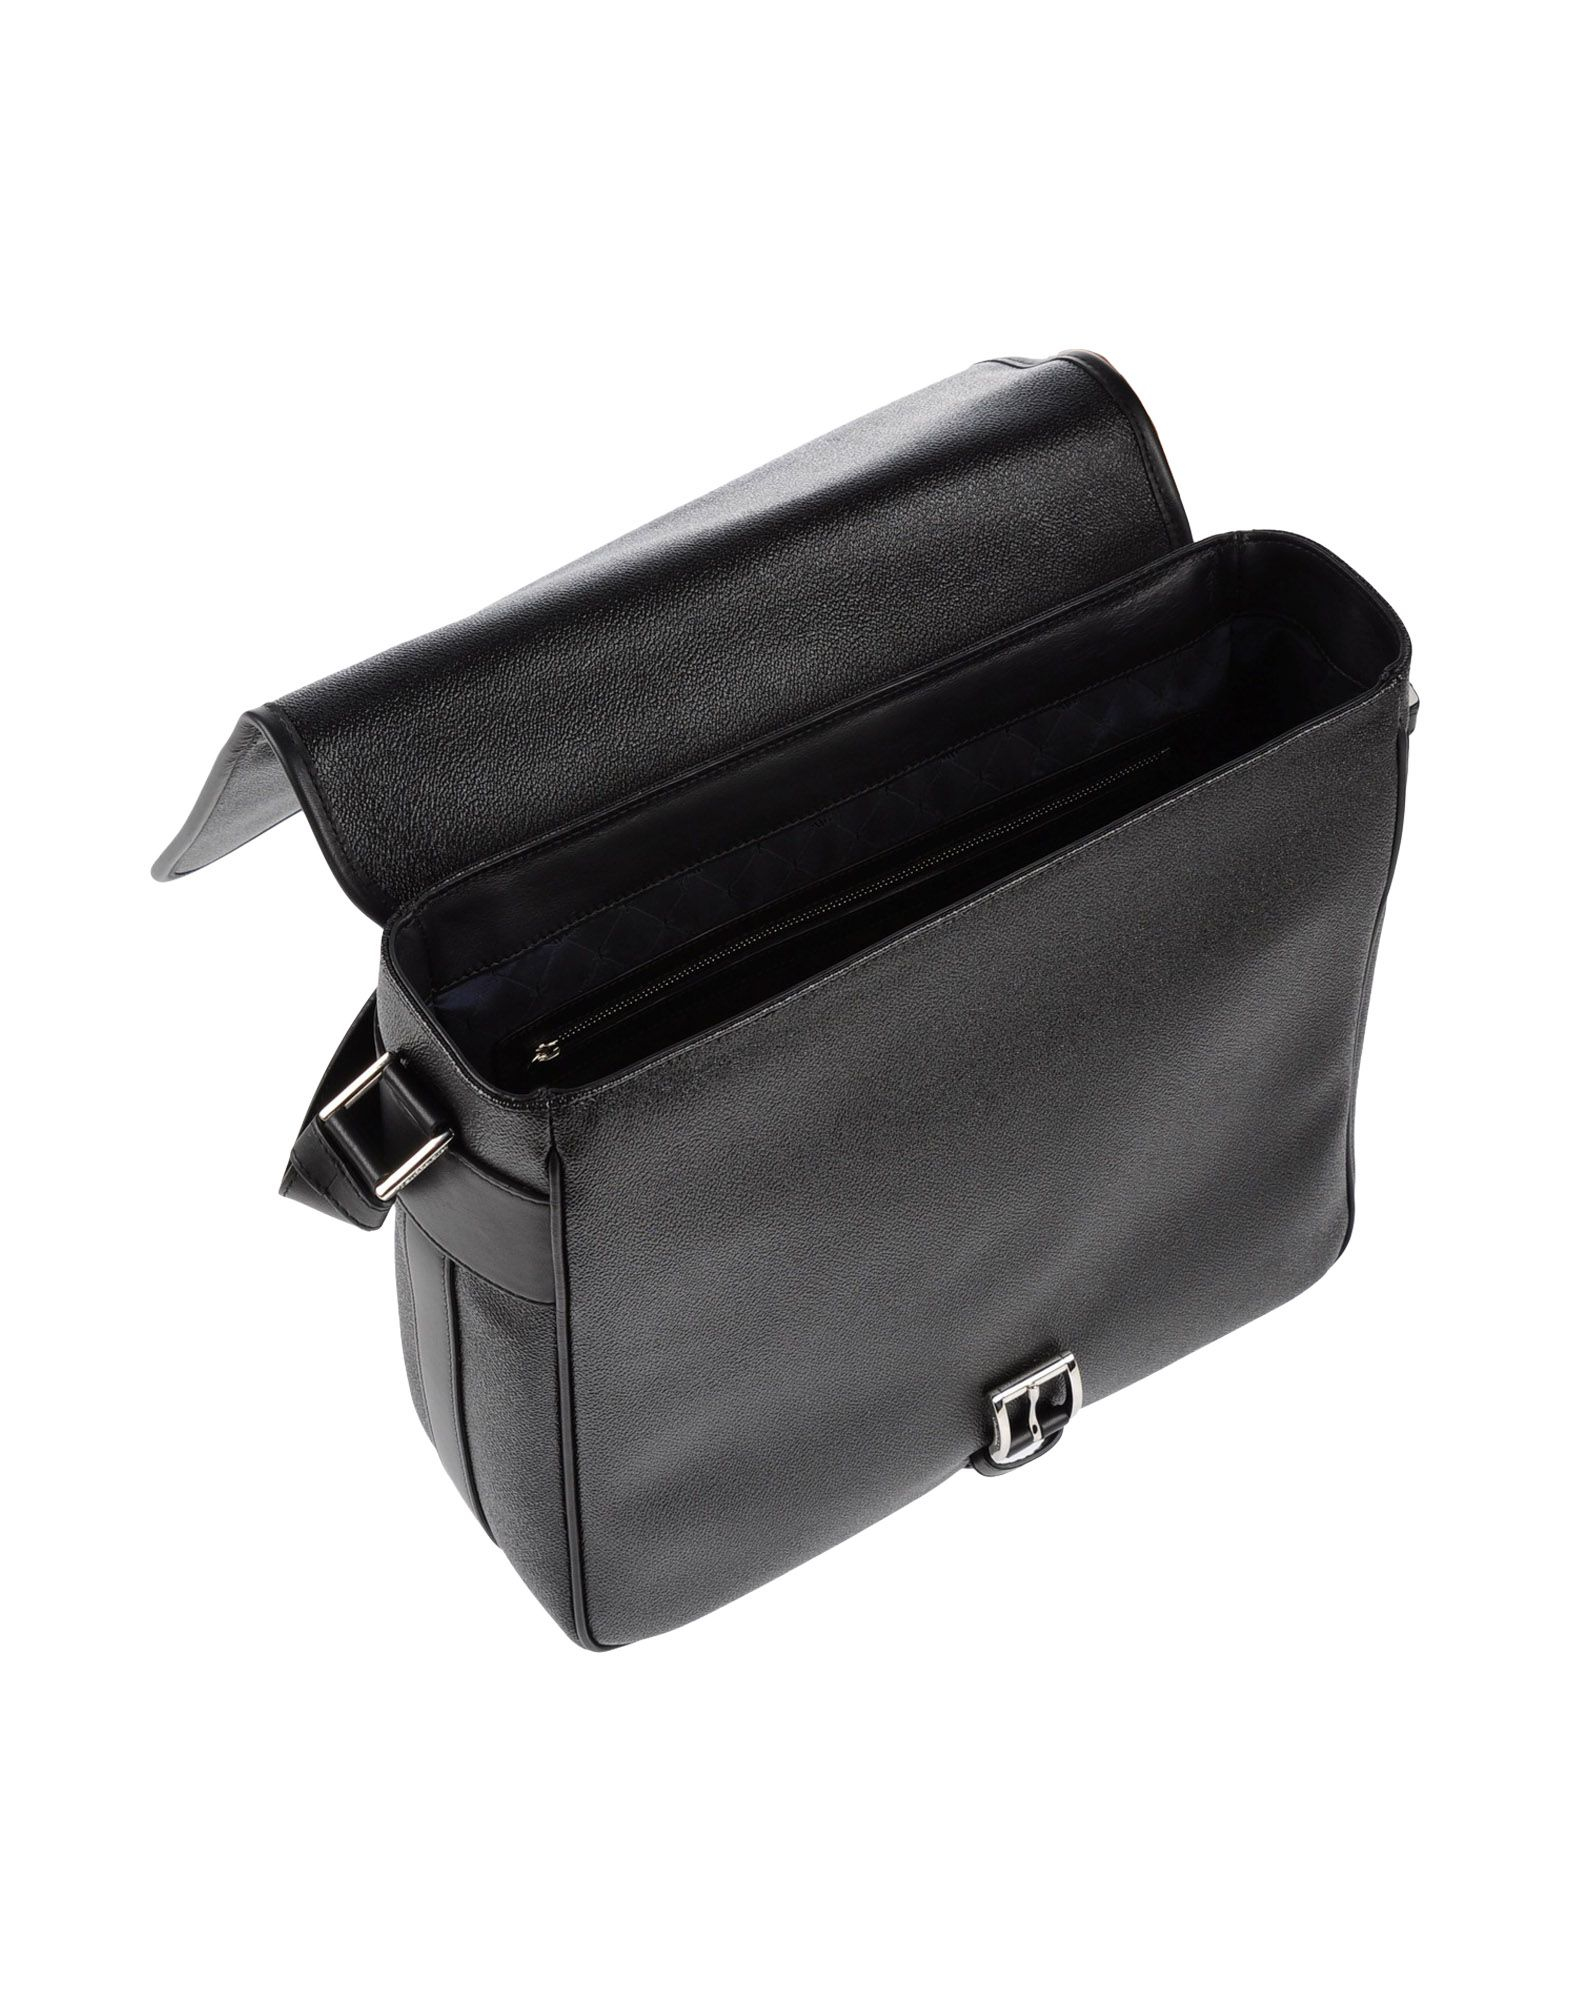 b7cf1375e4 Trussardi Cross-body Bag in Black for Men